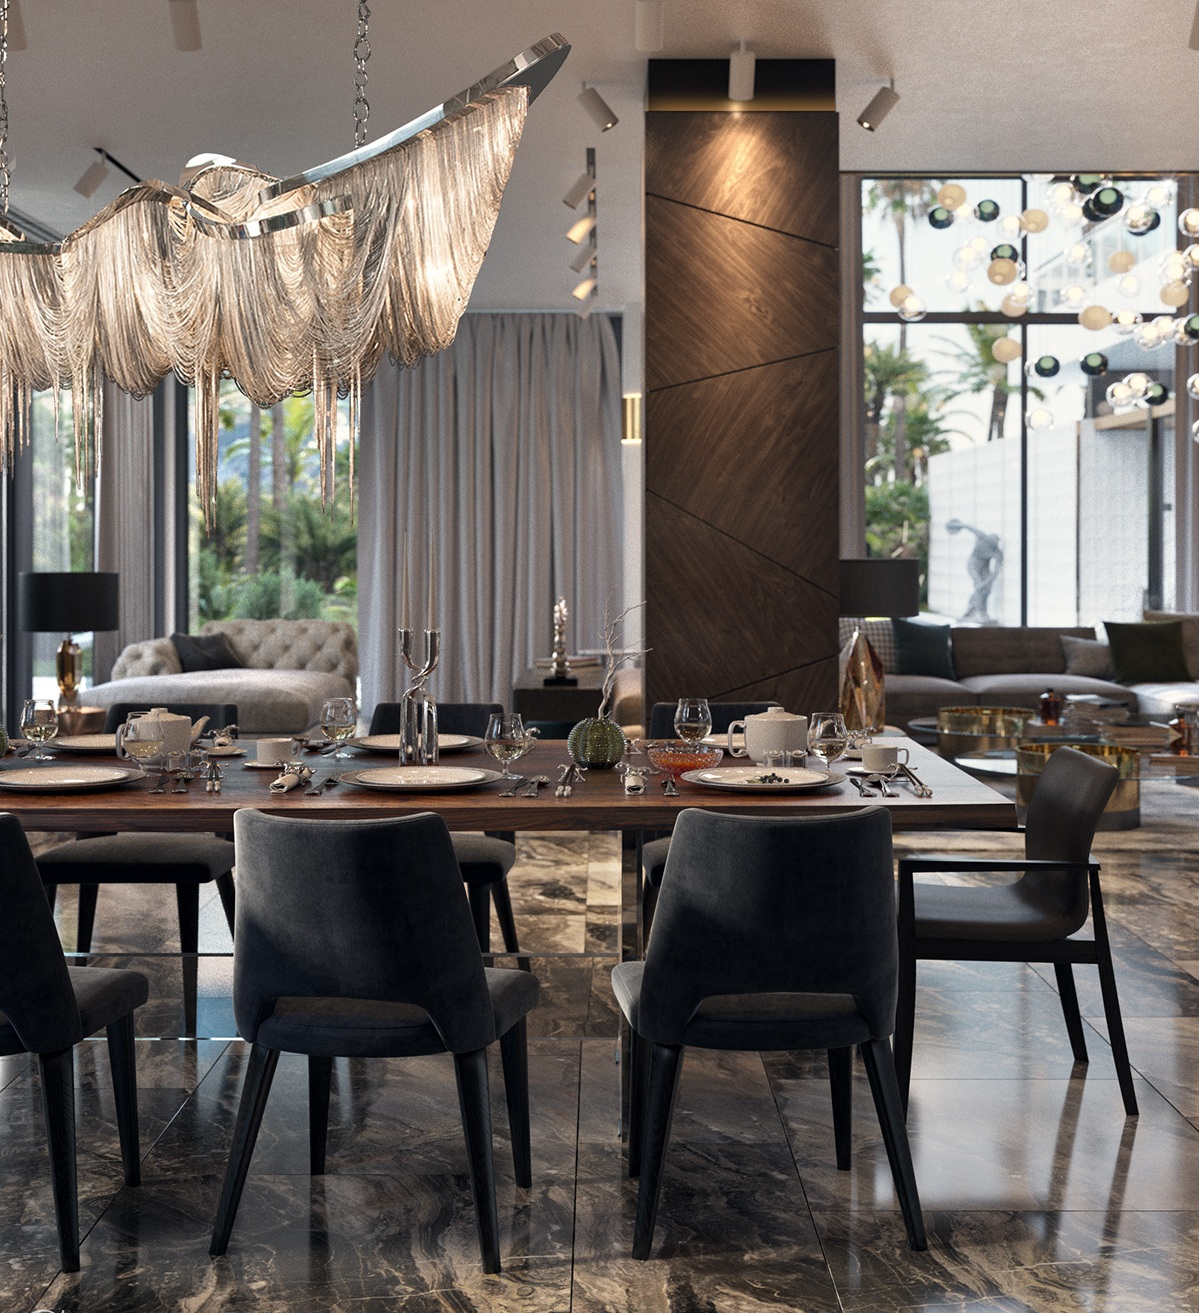 Dining Table Ideas You'll Love